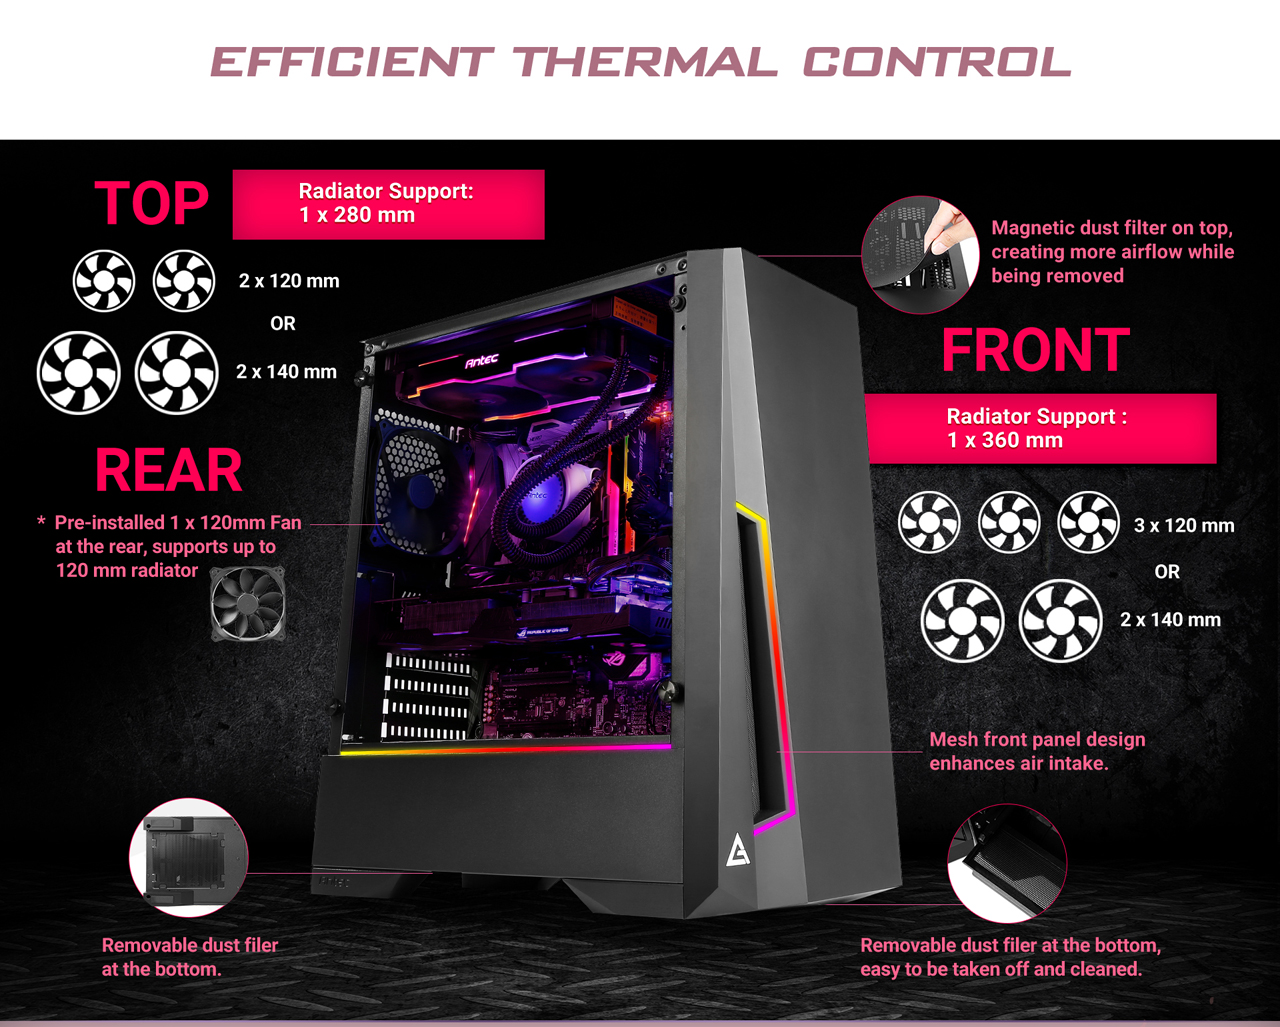 Efficient Thermal Control